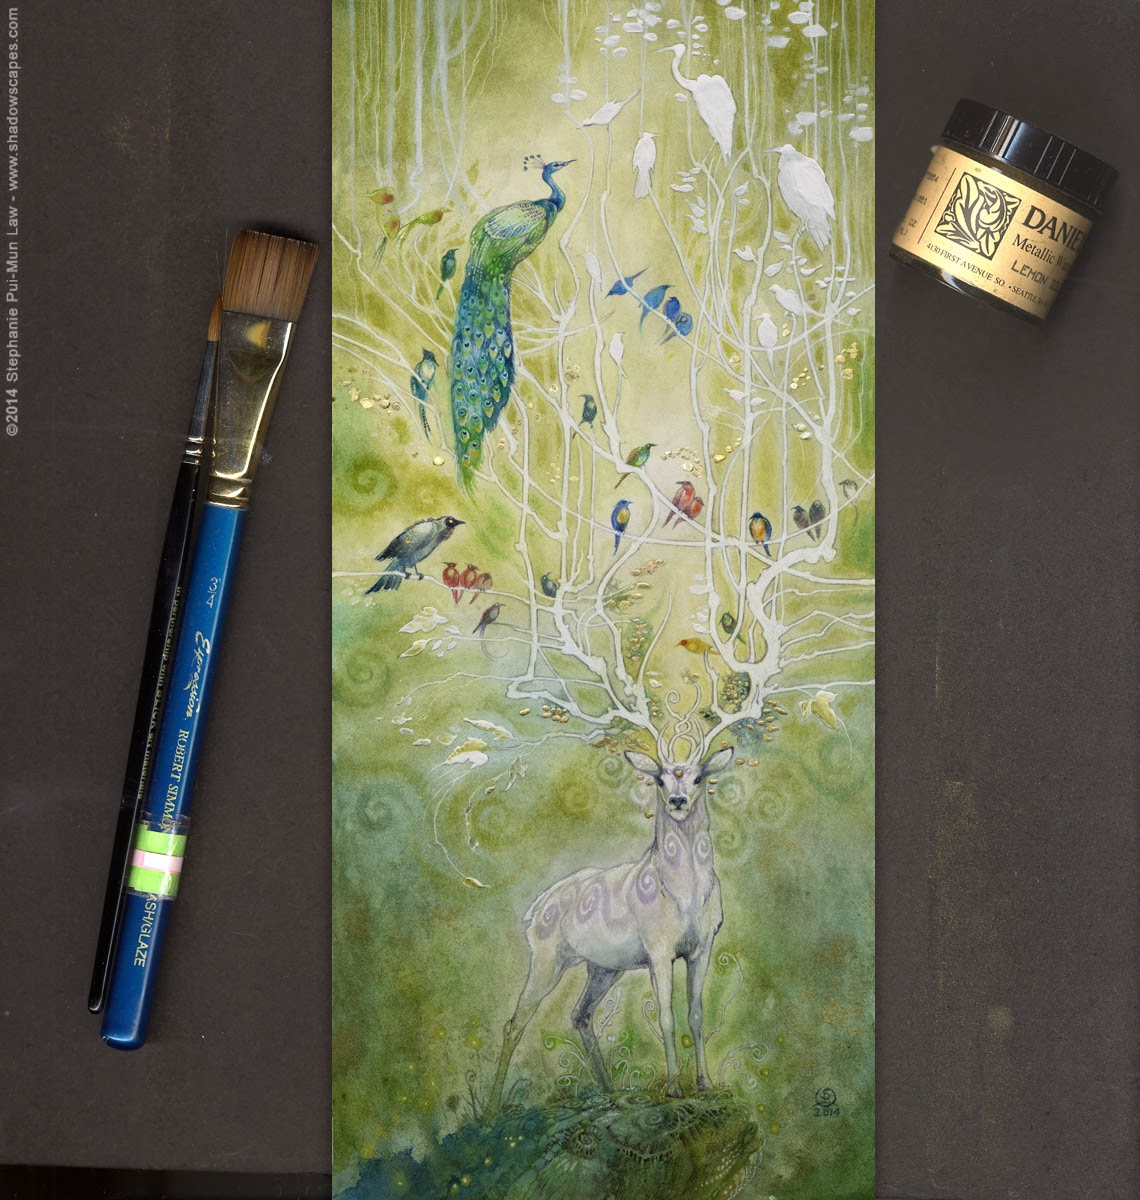 http://www.shadowscapes.com/image.php?lineid=23&bid=1045